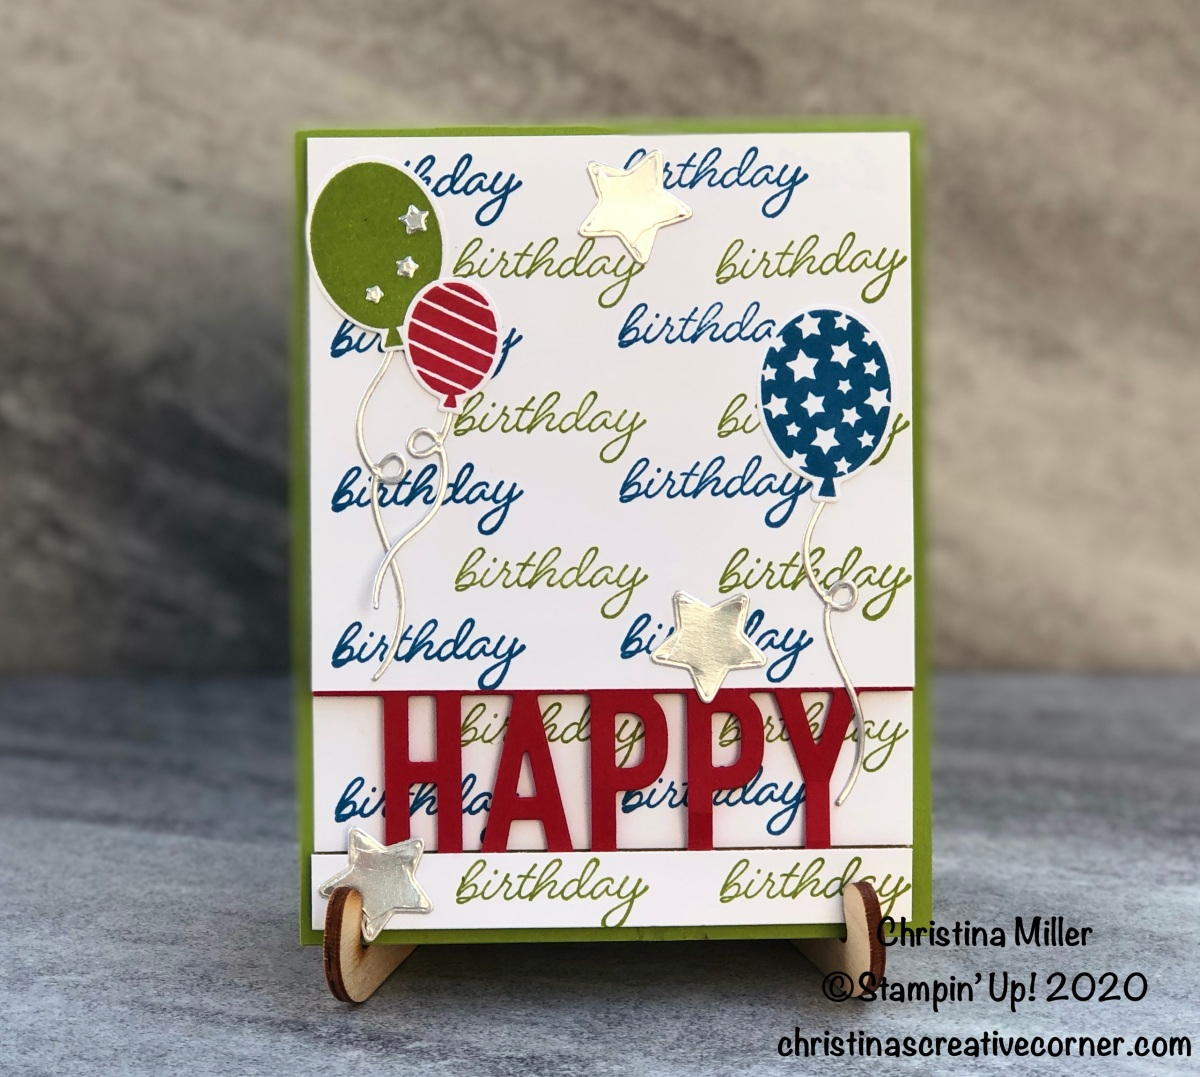 So Much Happy Birthday Card Week!